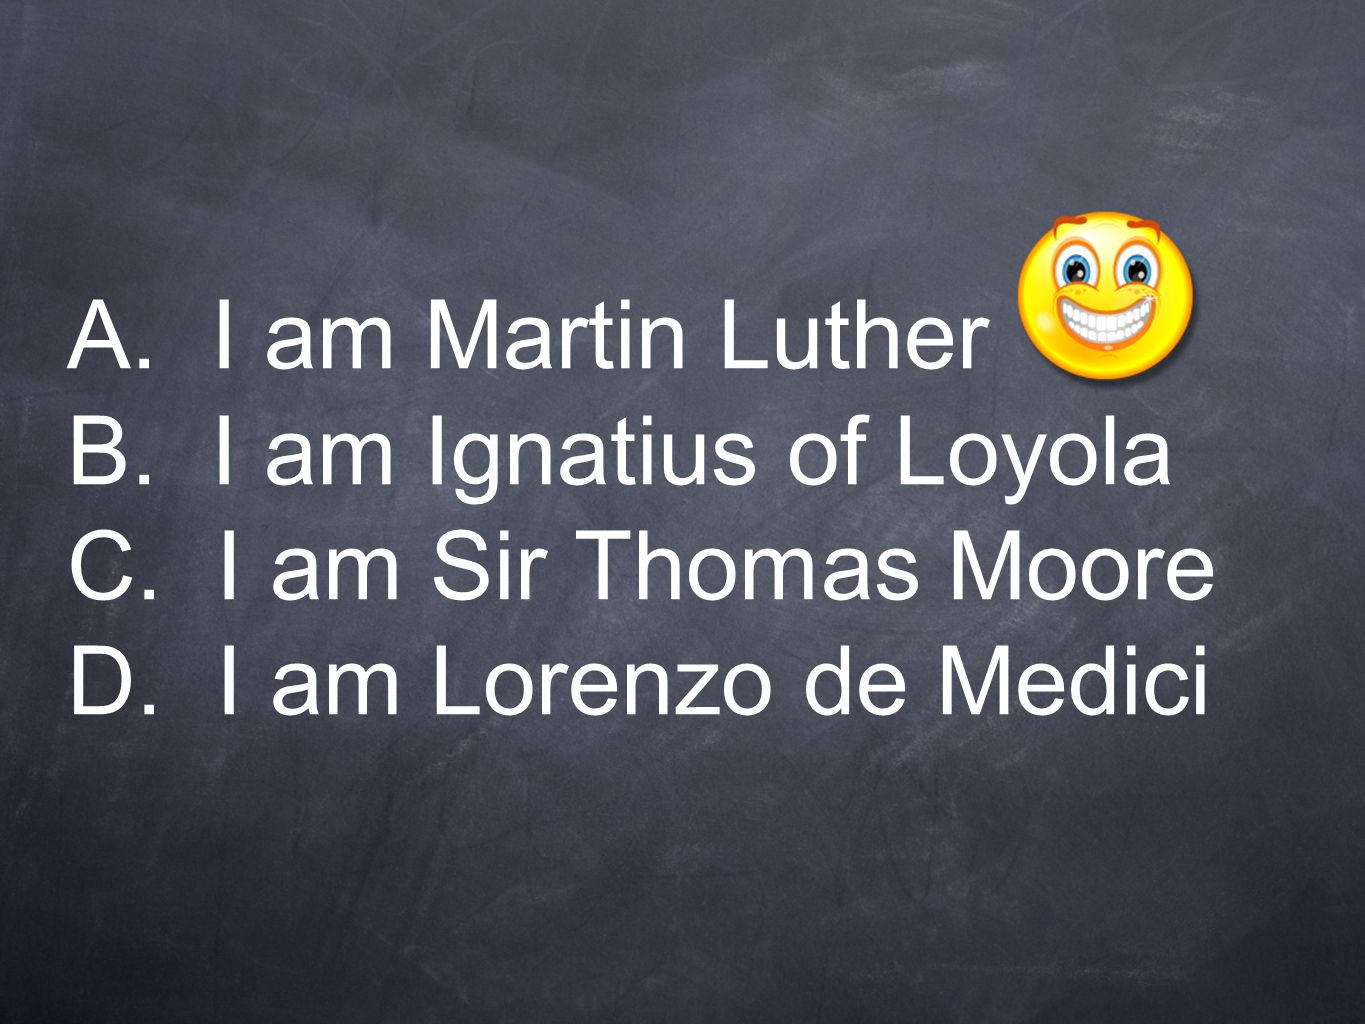 who am i chapter review i wrote theses protesting against  3 a i am martin luther b i am ignatius of loyola c i am sir thomas moore d i am lorenzo de medici